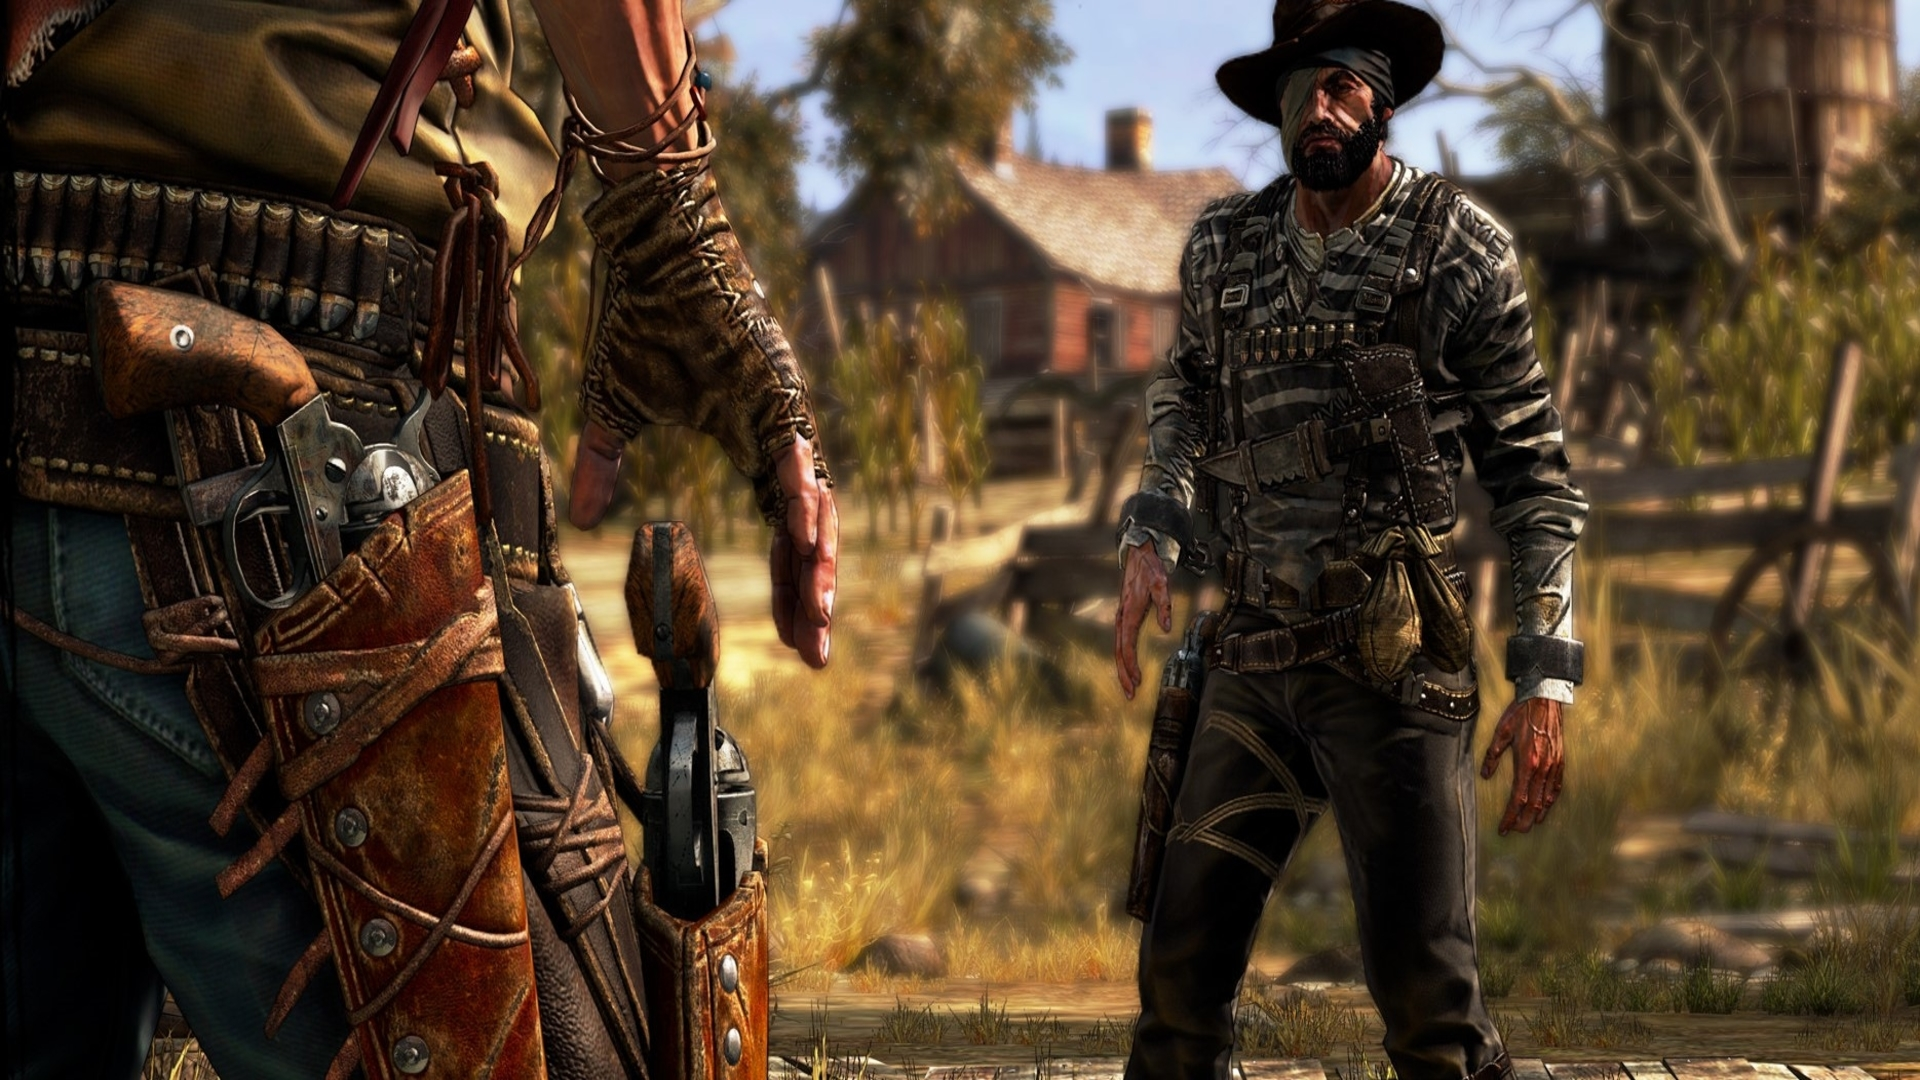 Western games: the best Wild West games on PC